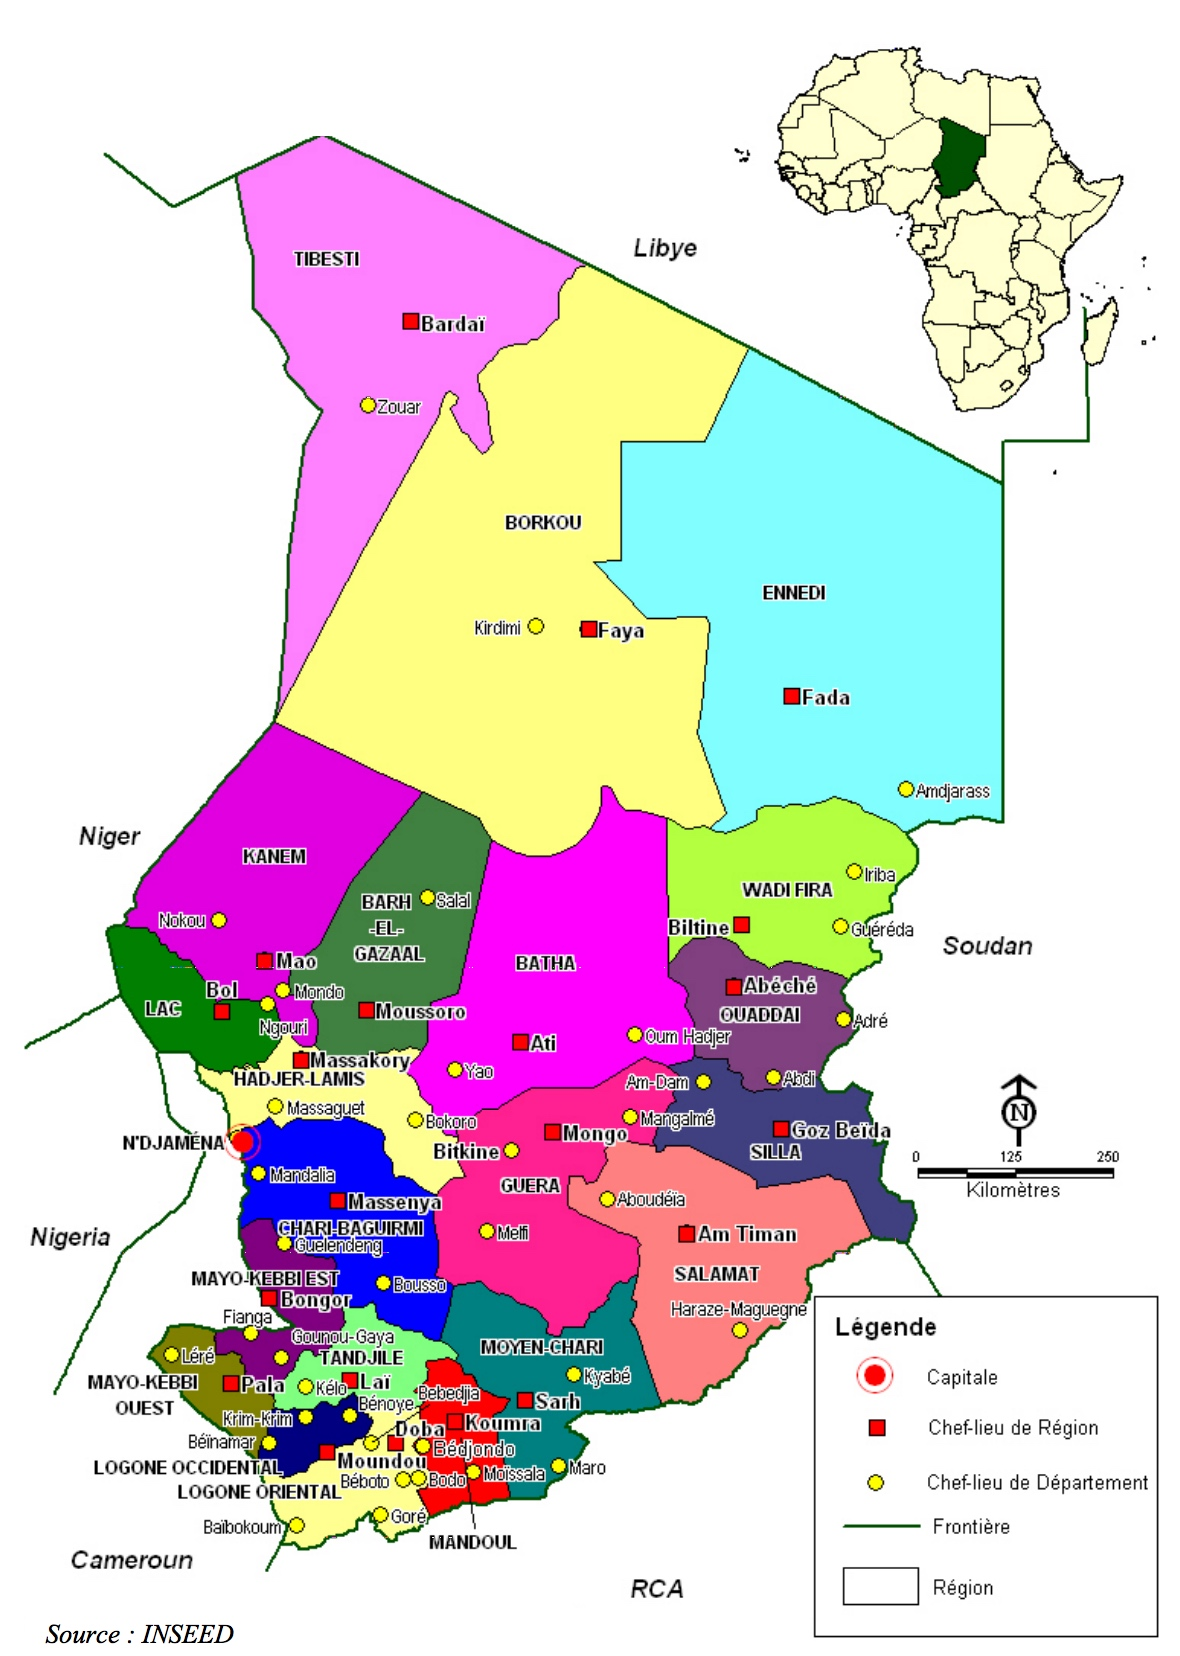 Favori Tchad - administrative • Carte • PopulationData.net DR88